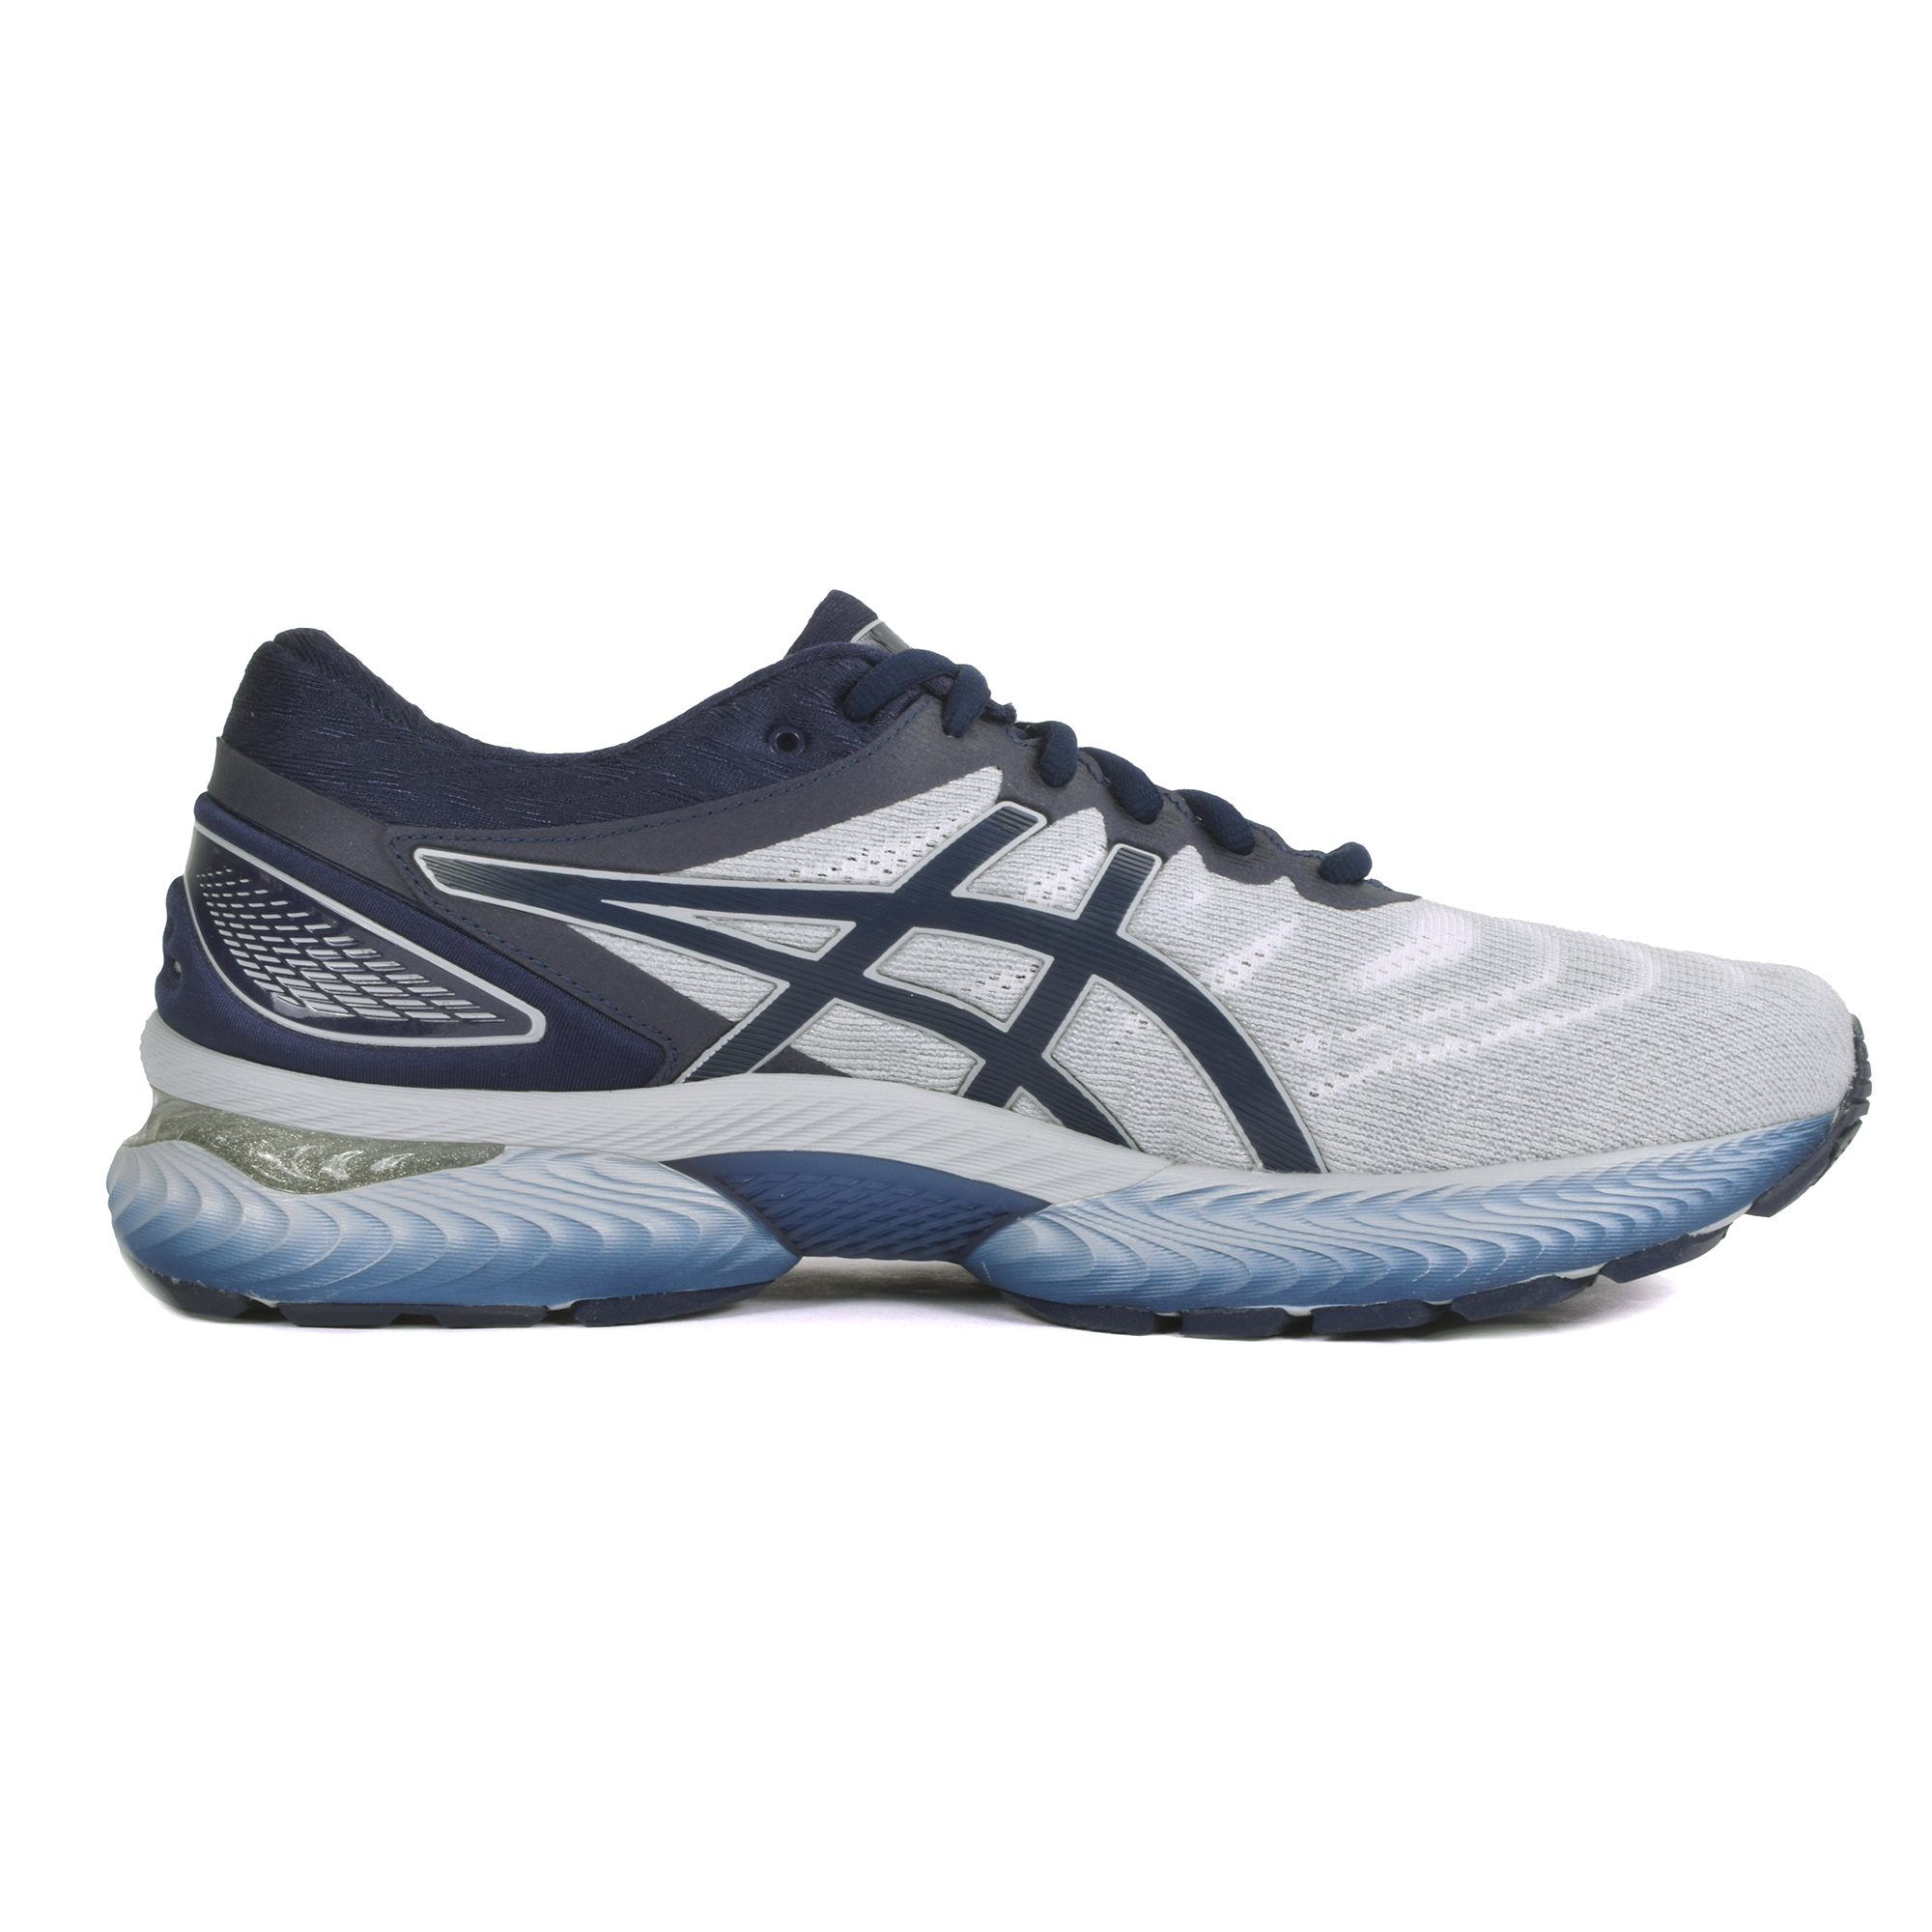 Men's Asics Gel-Nimbus 22 Running Shoe - Color: White/Peacoat (Regular Width) - Size: 7, Grey, large, image 3